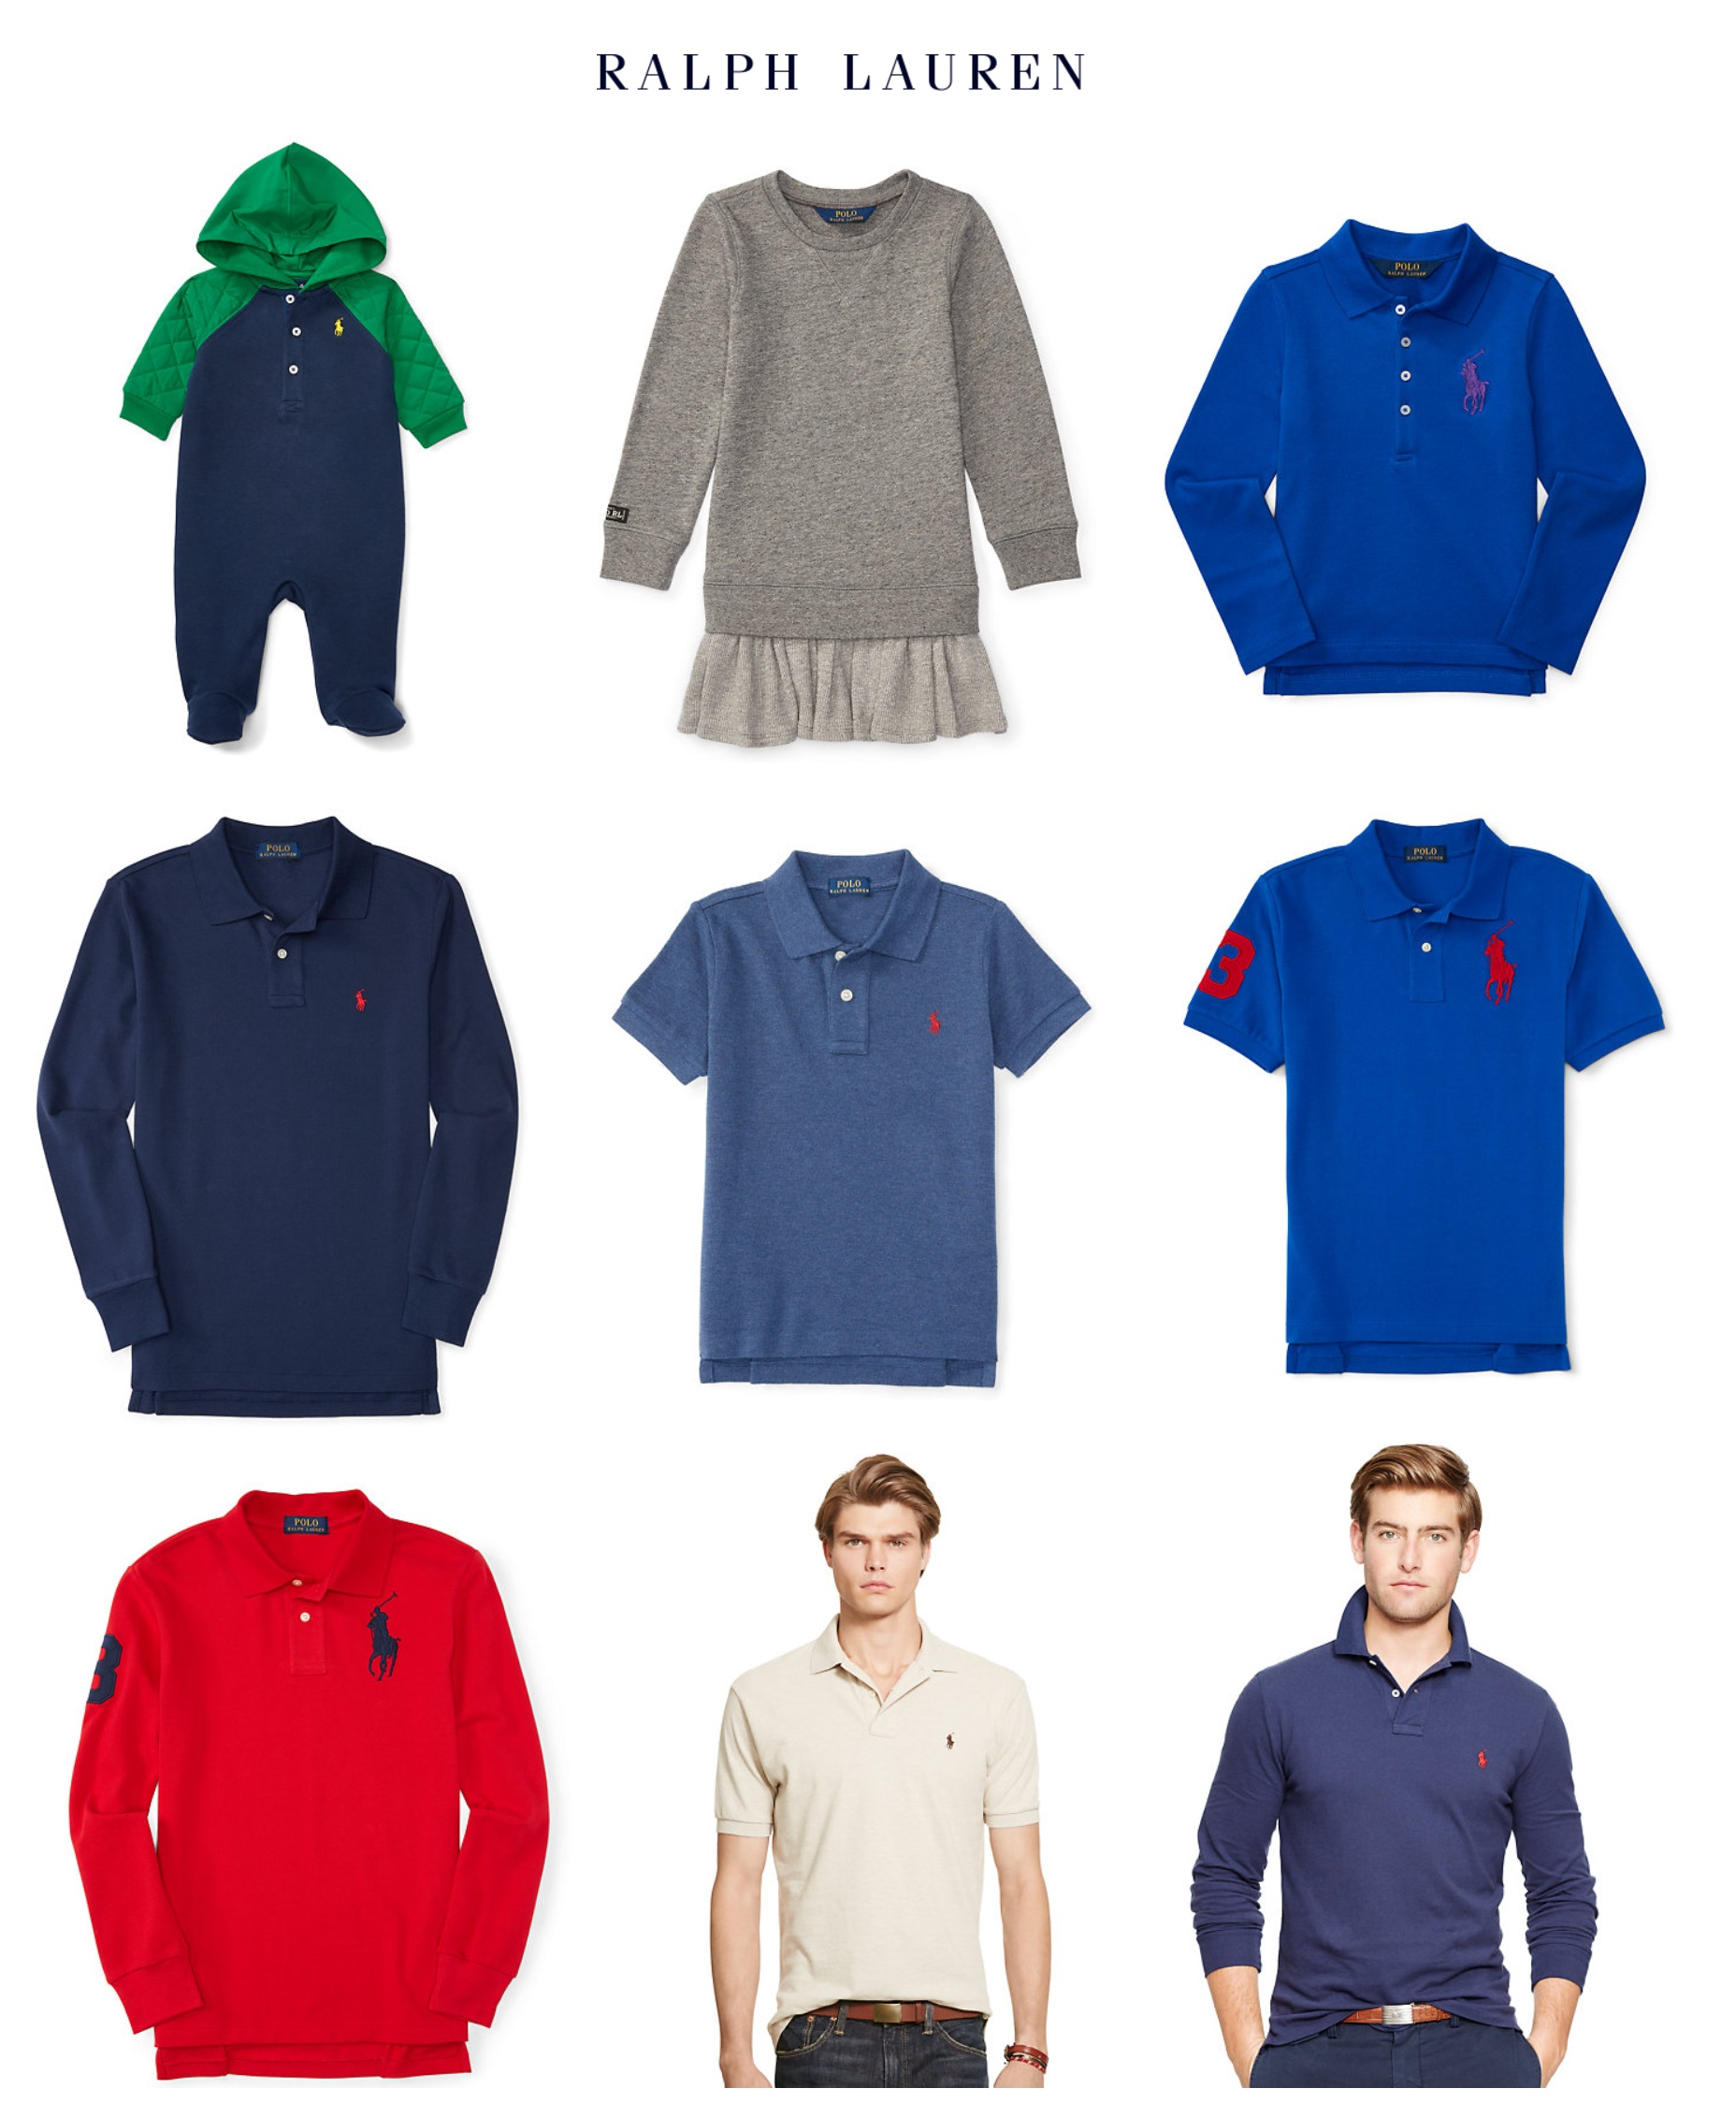 Ralph Lauren takes an extra 40% off select sale styles via coupon code